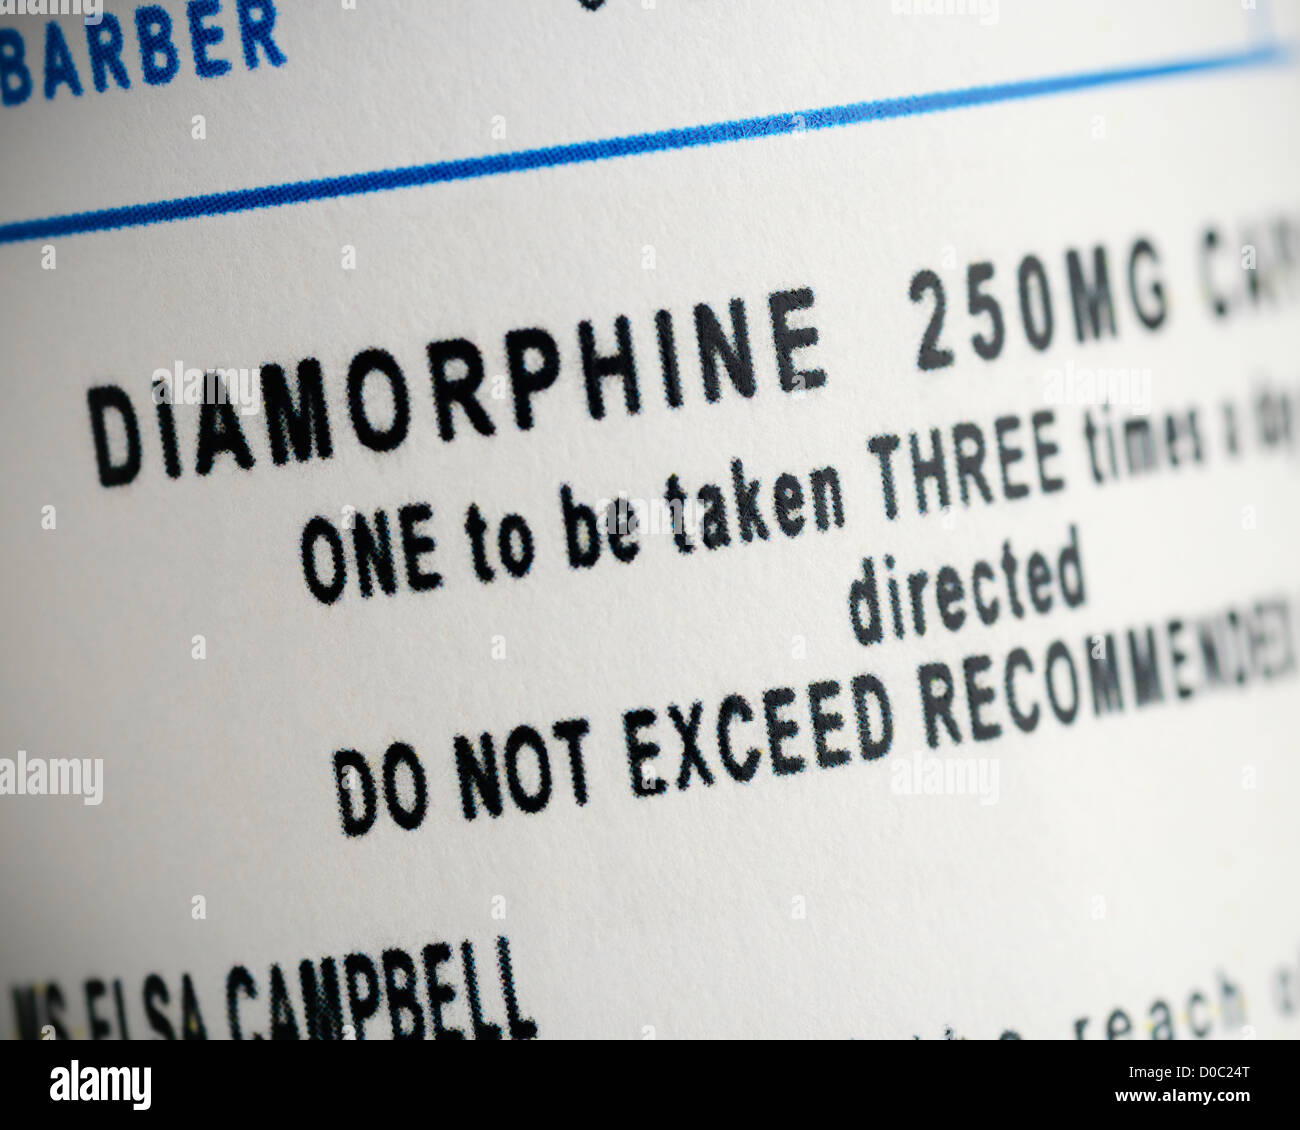 Label on a Bottle of Diamorphine Capsules. Close Up. - Stock Image